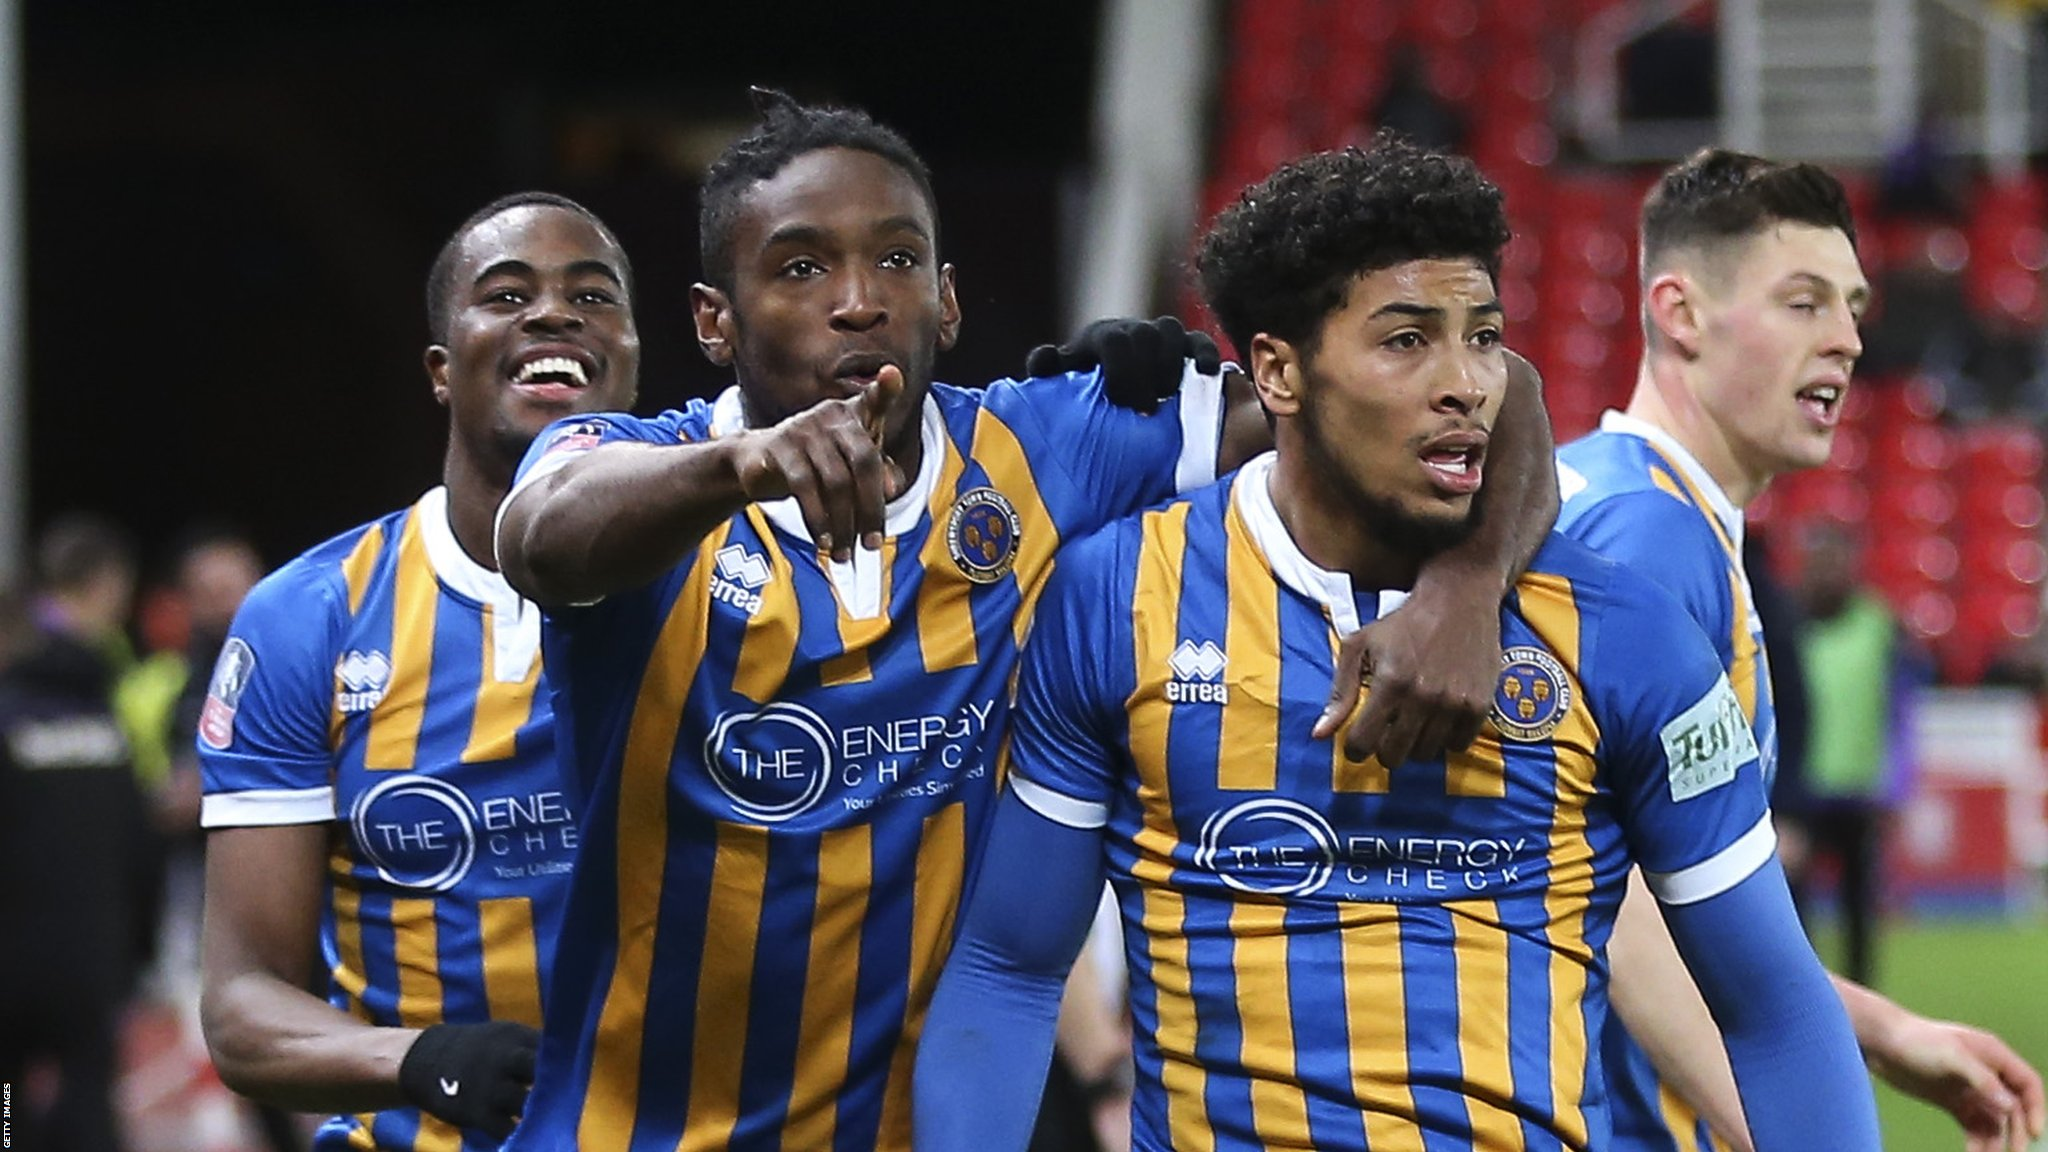 FA Cup third round: Stoke City 2-3 Shrewsbury